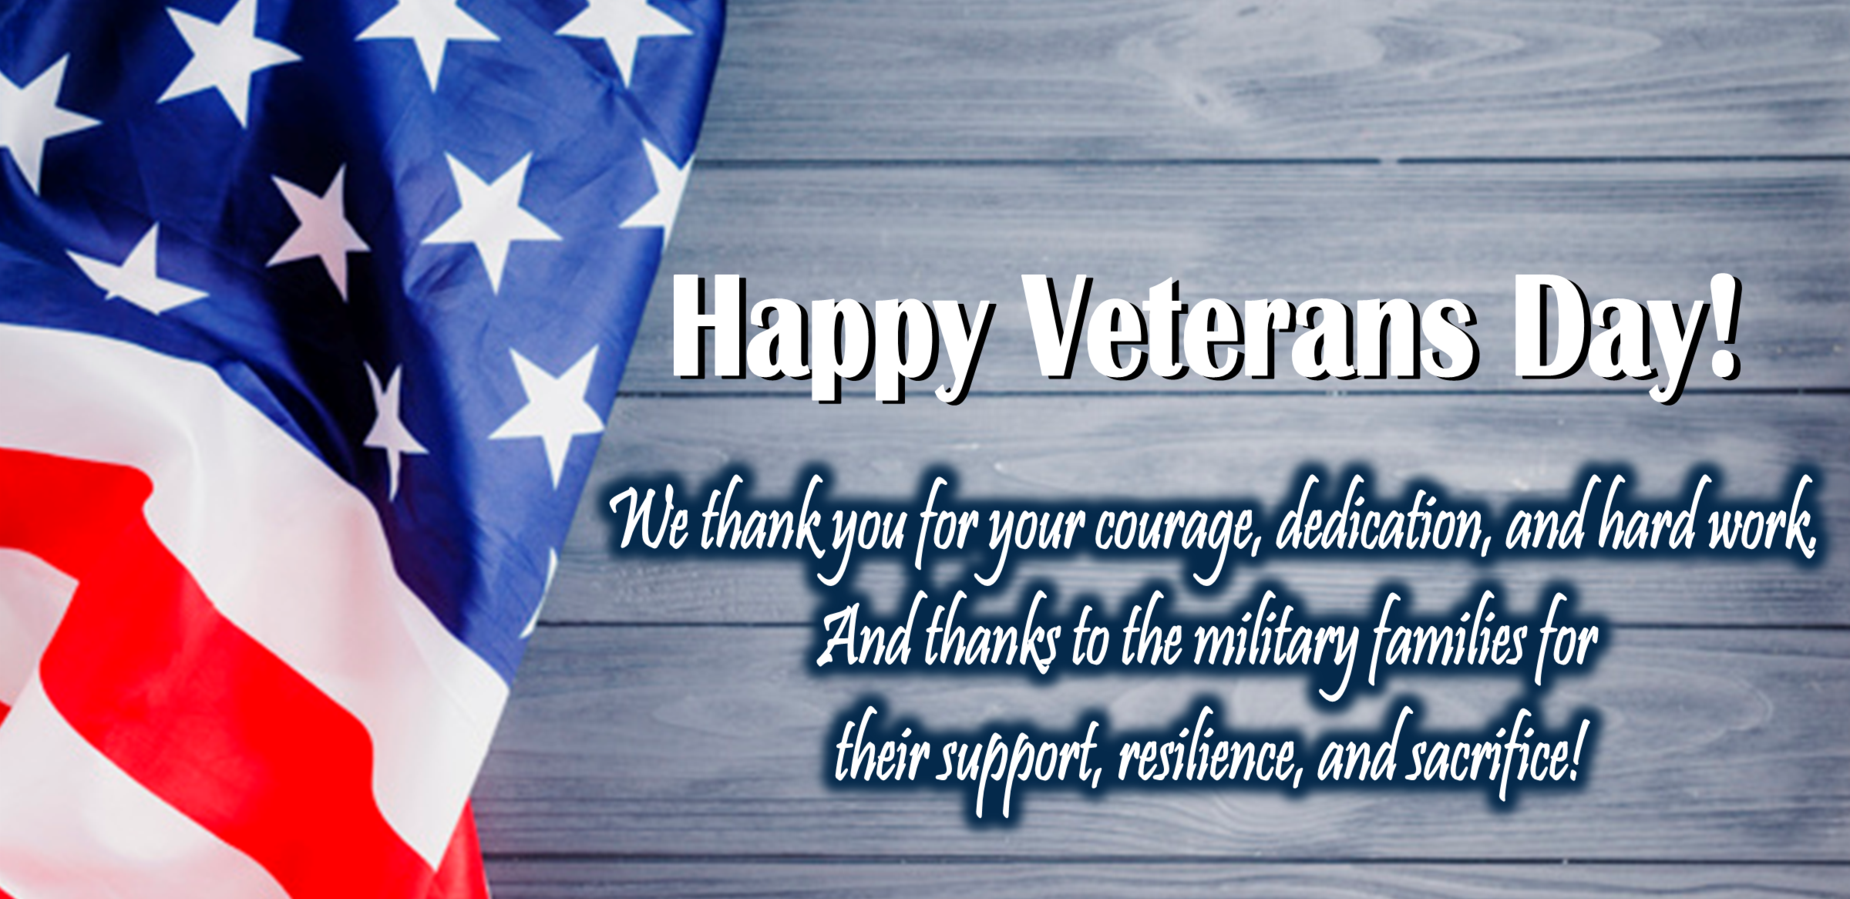 Happy Veterans Day! We thank you for your courage, dedication, and hard work. And thanks to the military families for their support, resilience, and sacrifice.